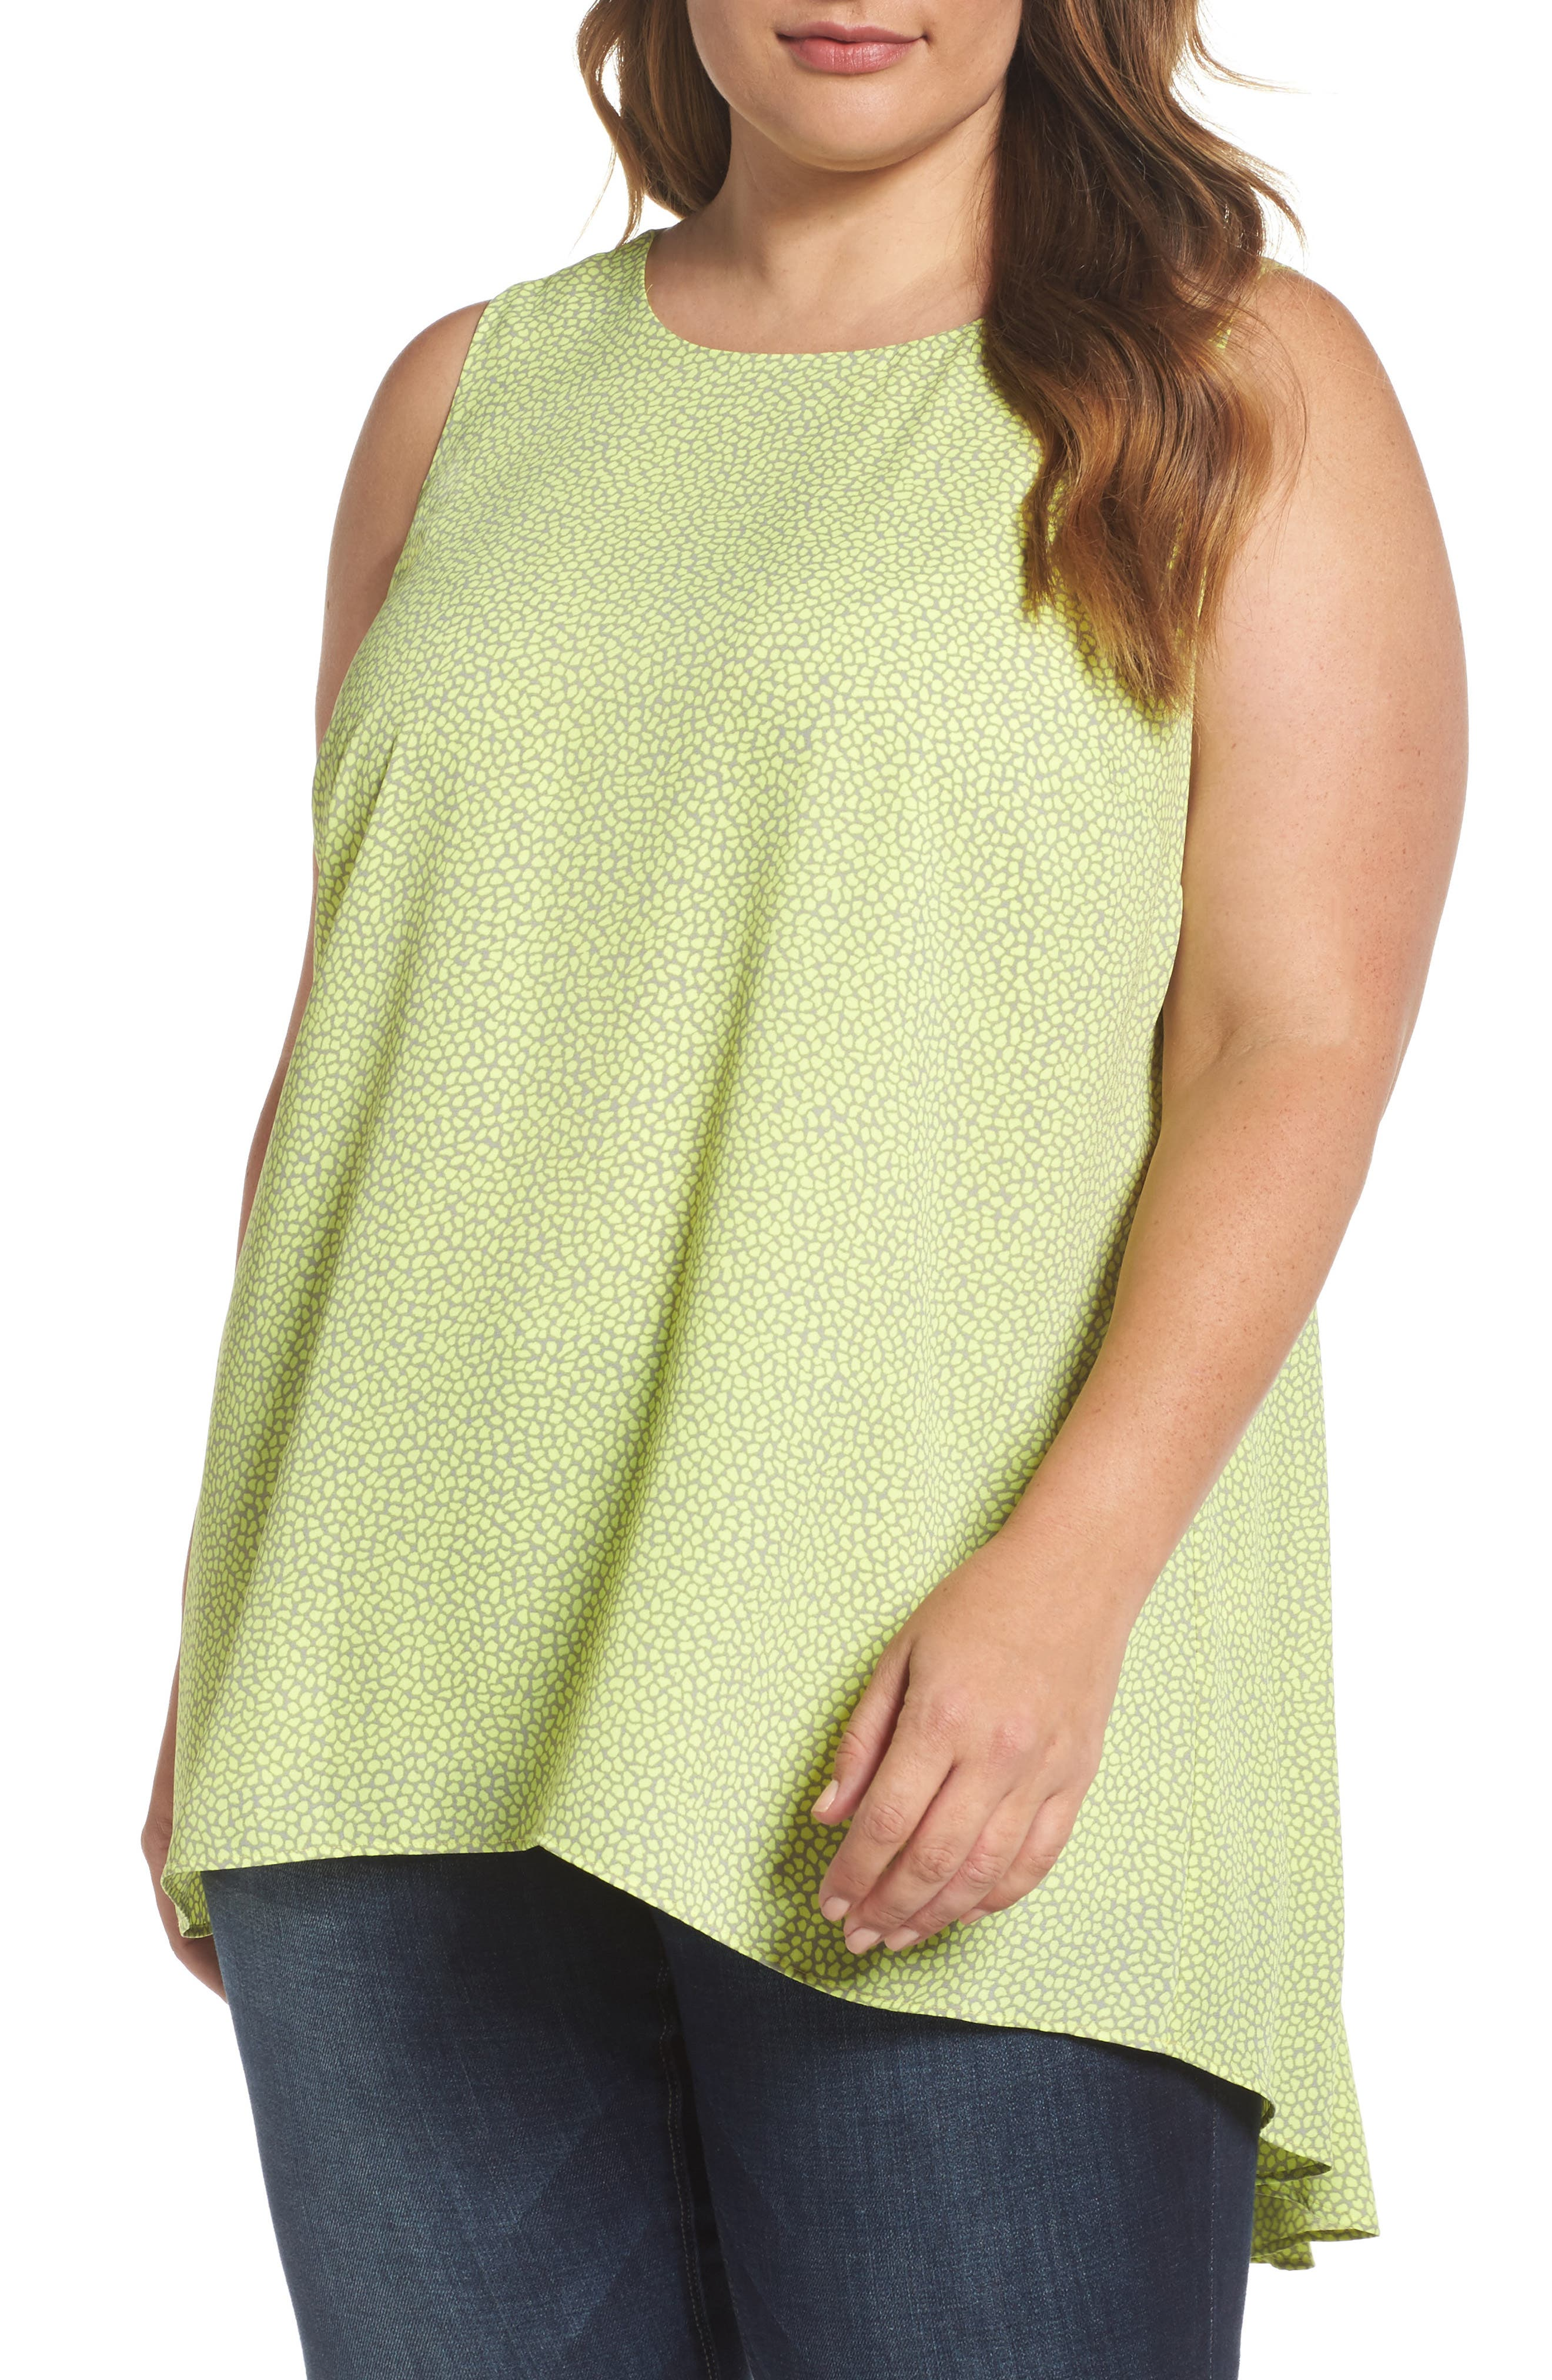 Vince Camuto Zen Pebbles High/Low Blouse (Plus Size)